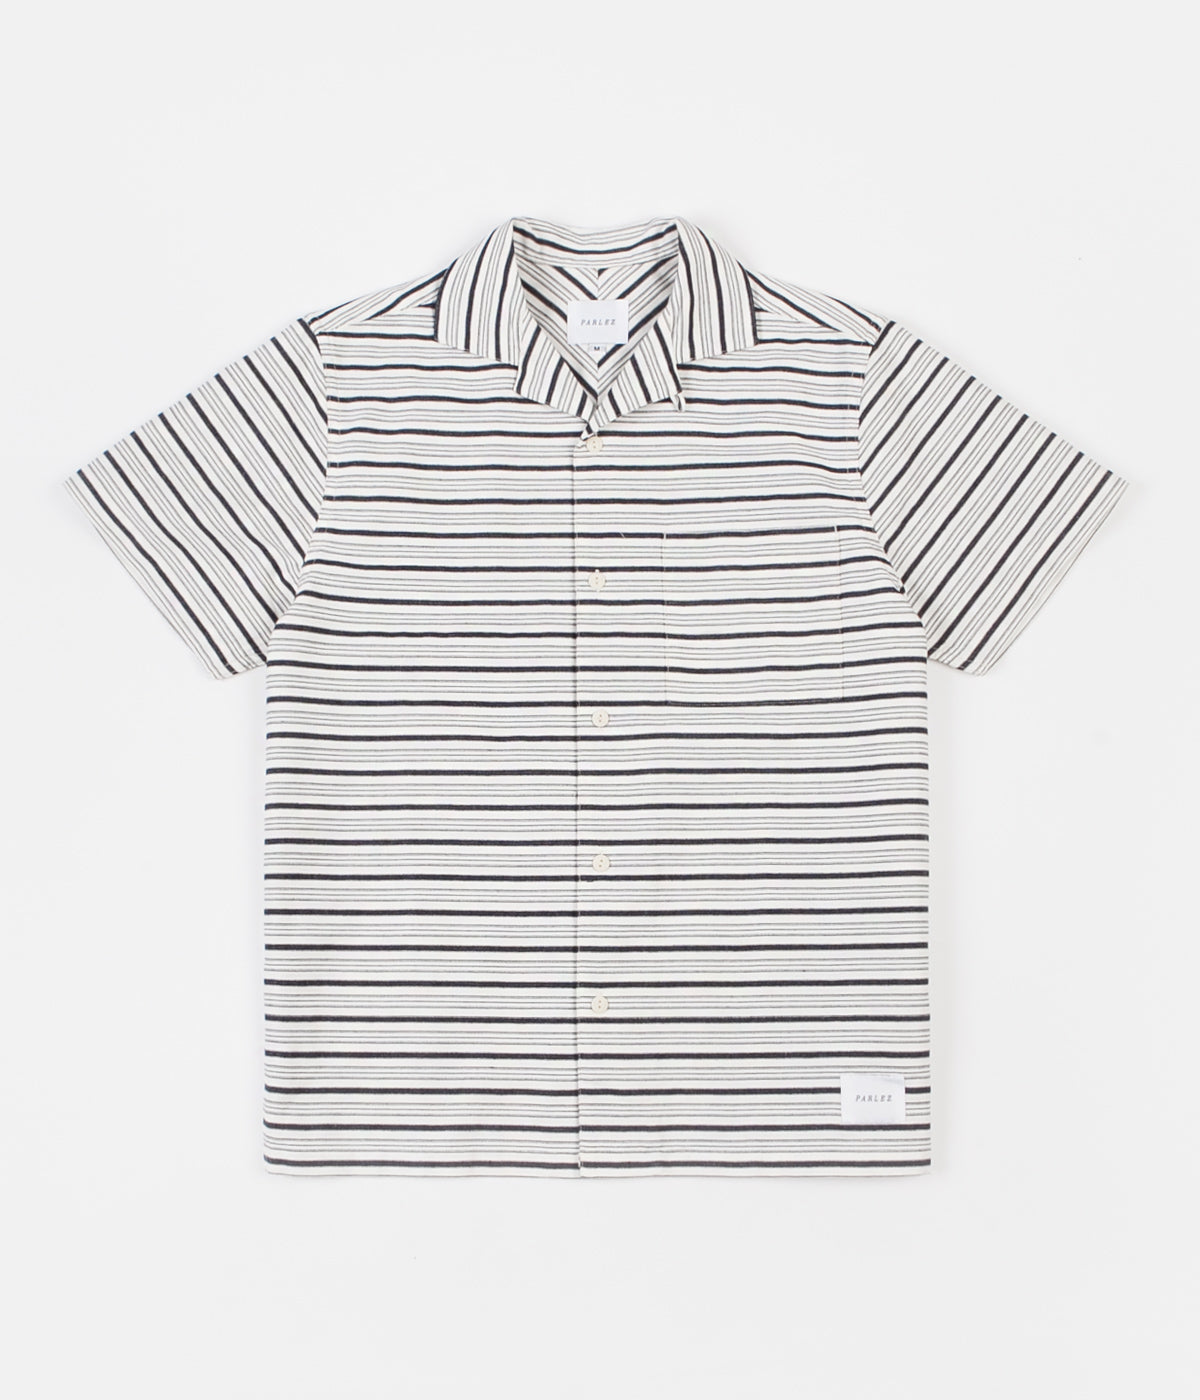 Parlez Galeas Short Sleeve Shirt - White Stripe